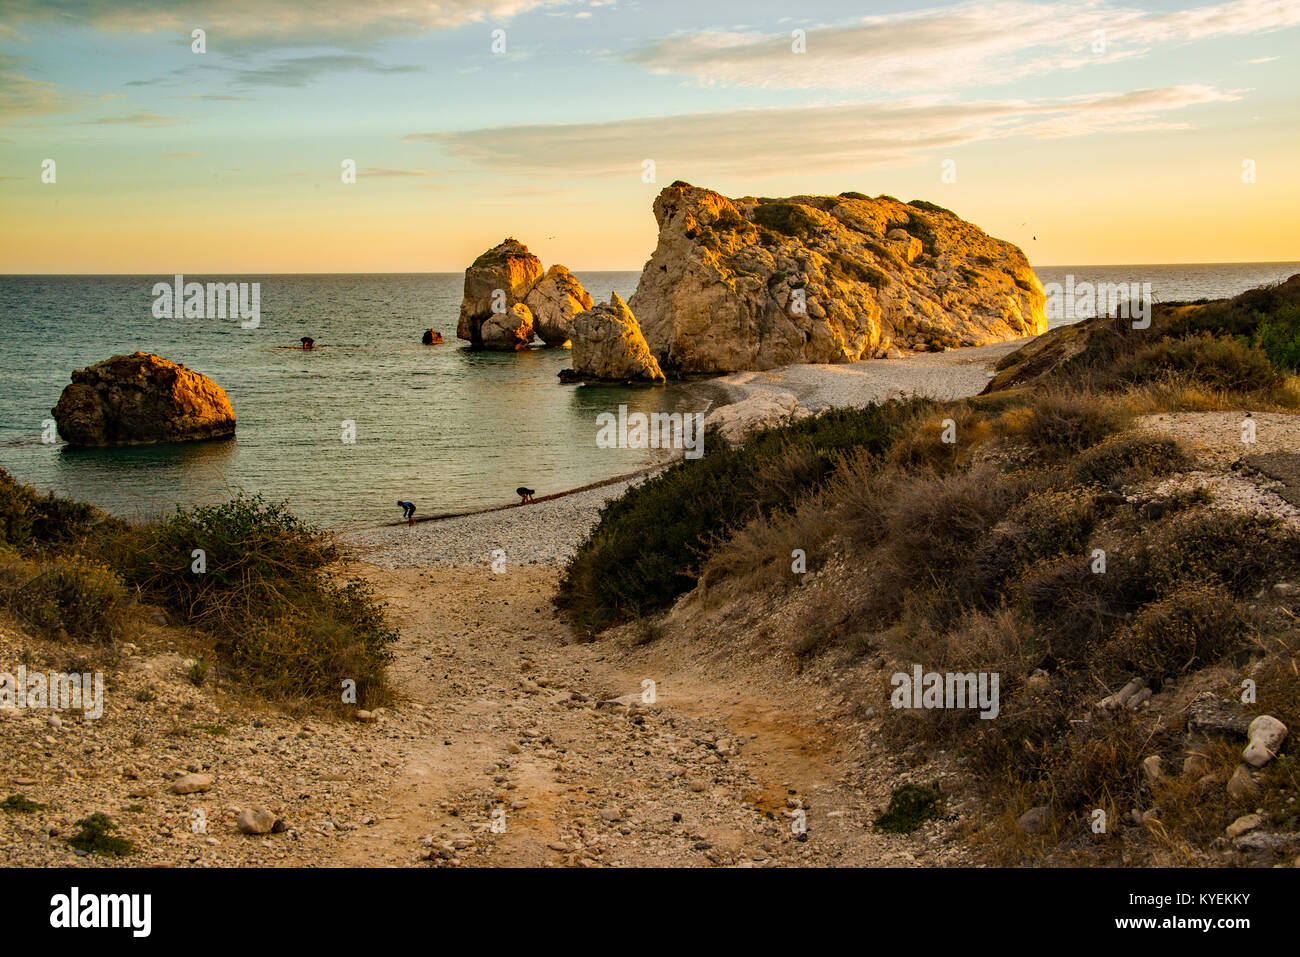 Rock of Aphrodite, Cyprus - Stock Image